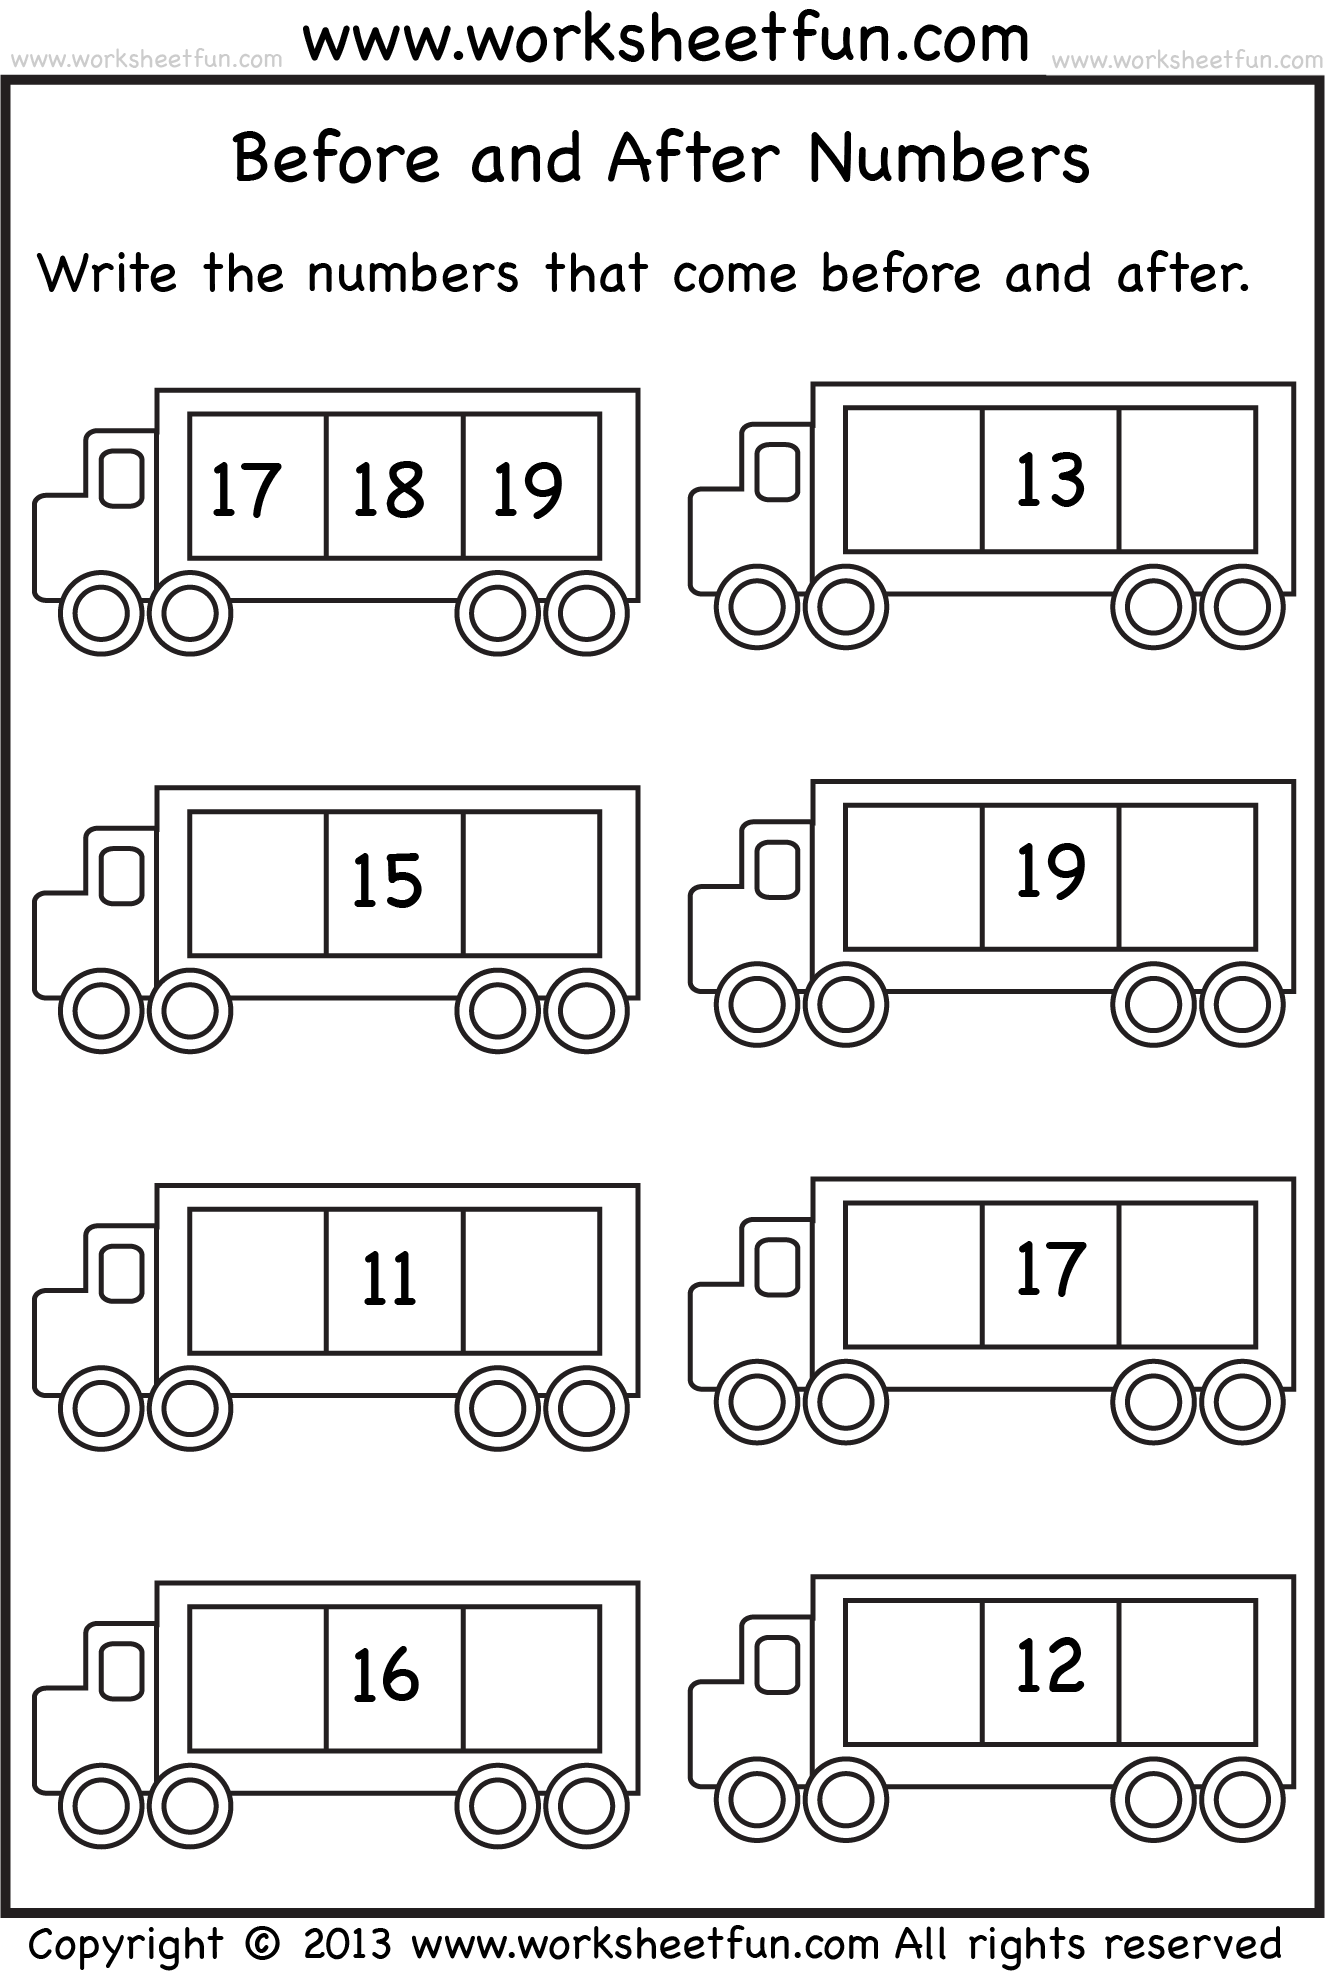 Before And After Numbers 5 Worksheets Free Printable Worksheets Worksheetfun